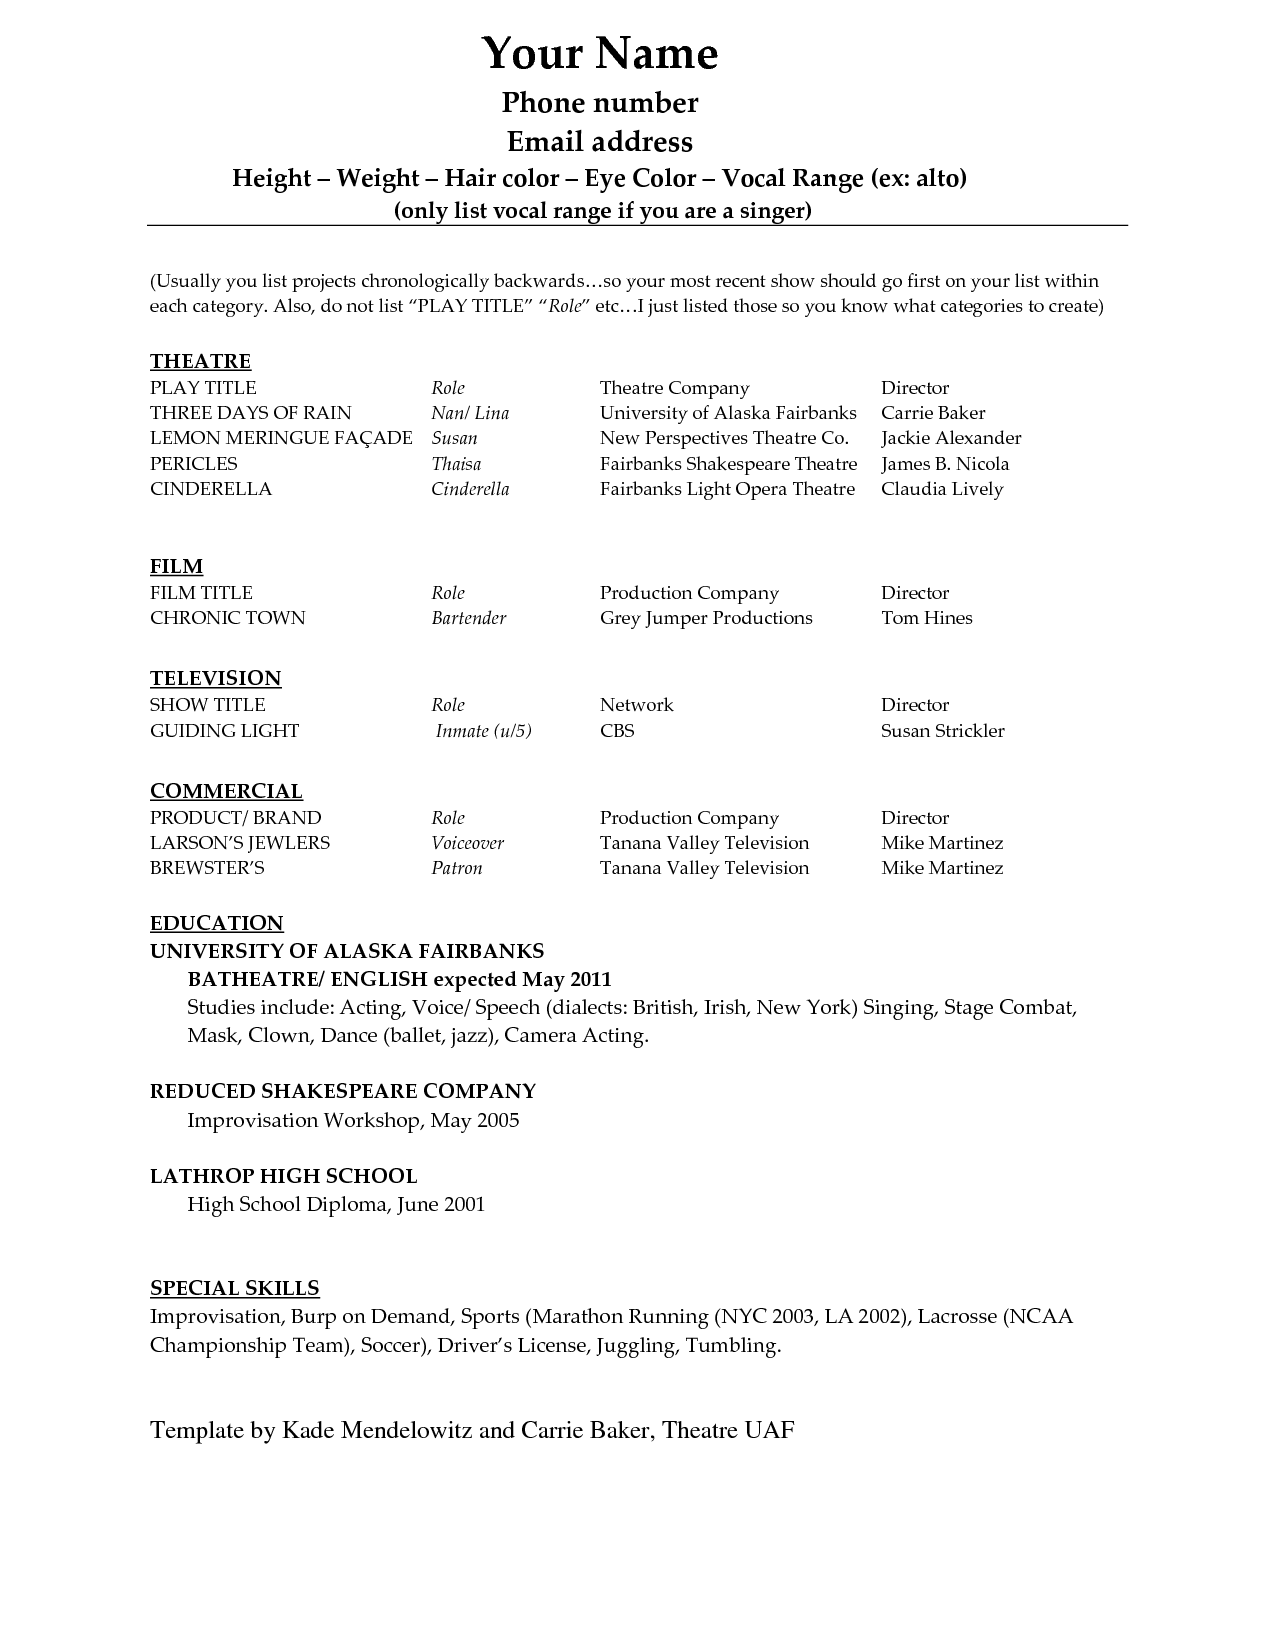 Acting Resume Template Download Free   Http://www.resumecareer.info/  Download Resume Templates Word